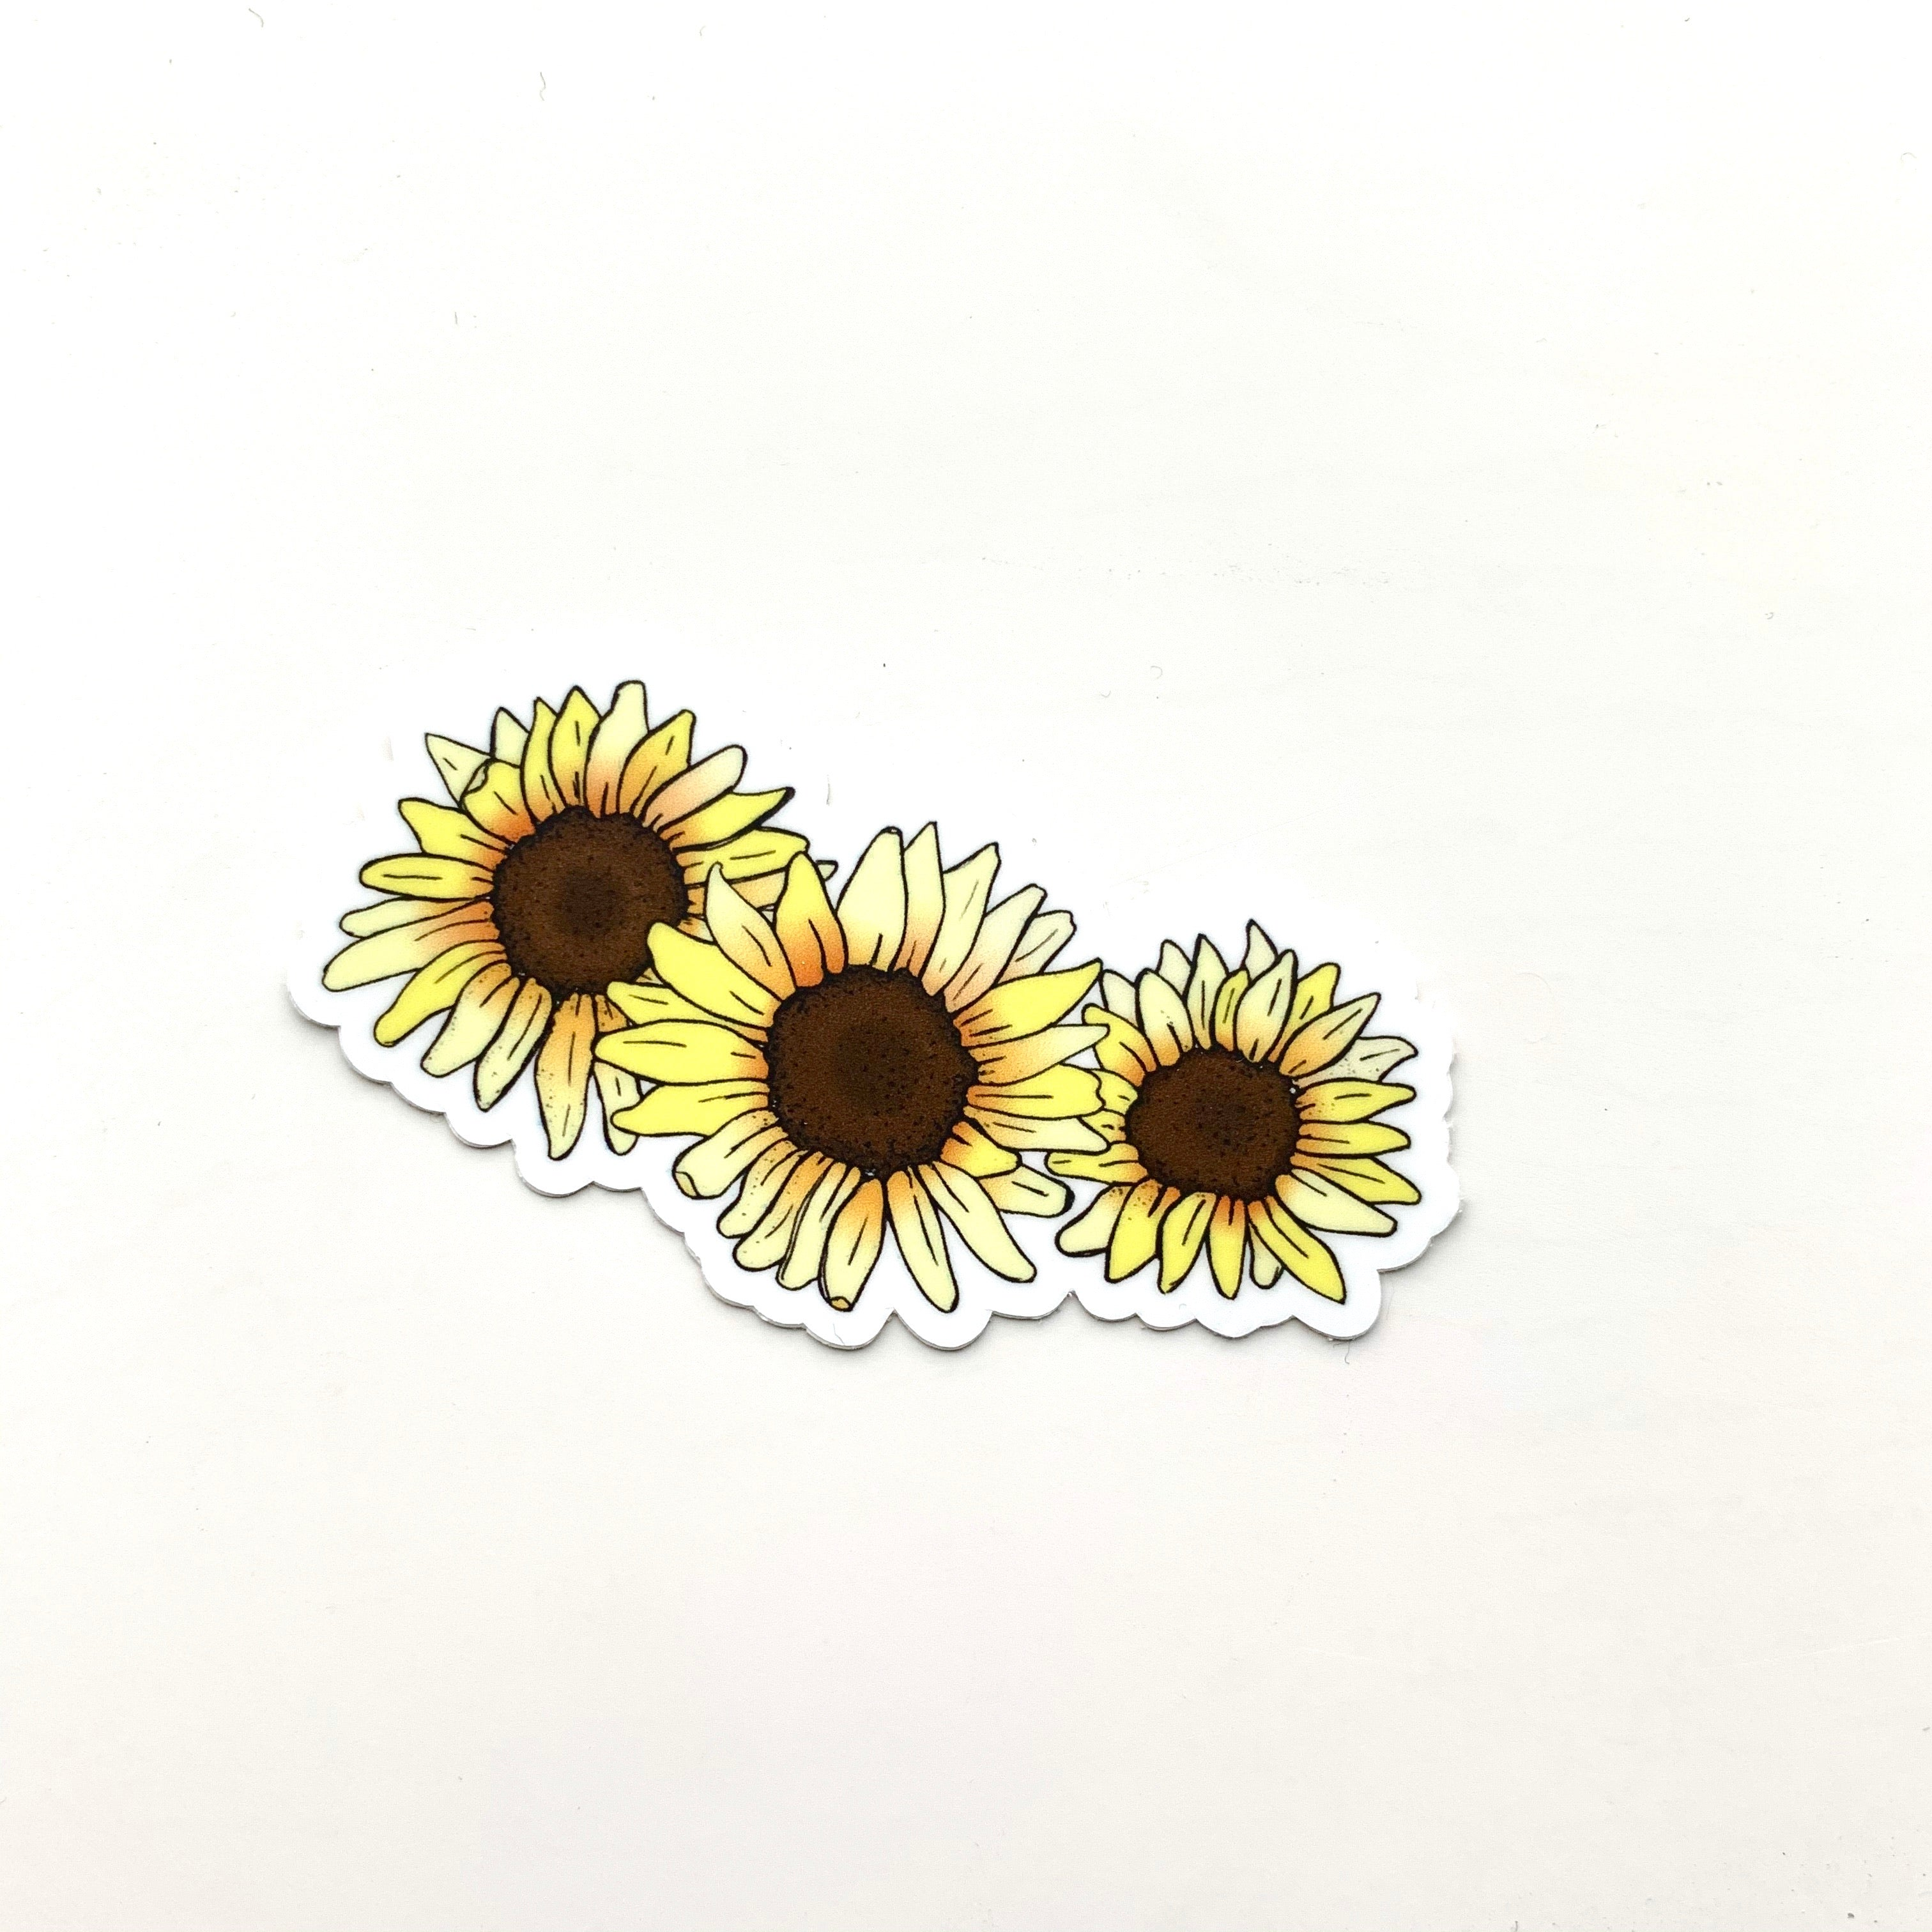 Three Sunflower Sticker-Vinyl Sticker-Roam Wild Designs